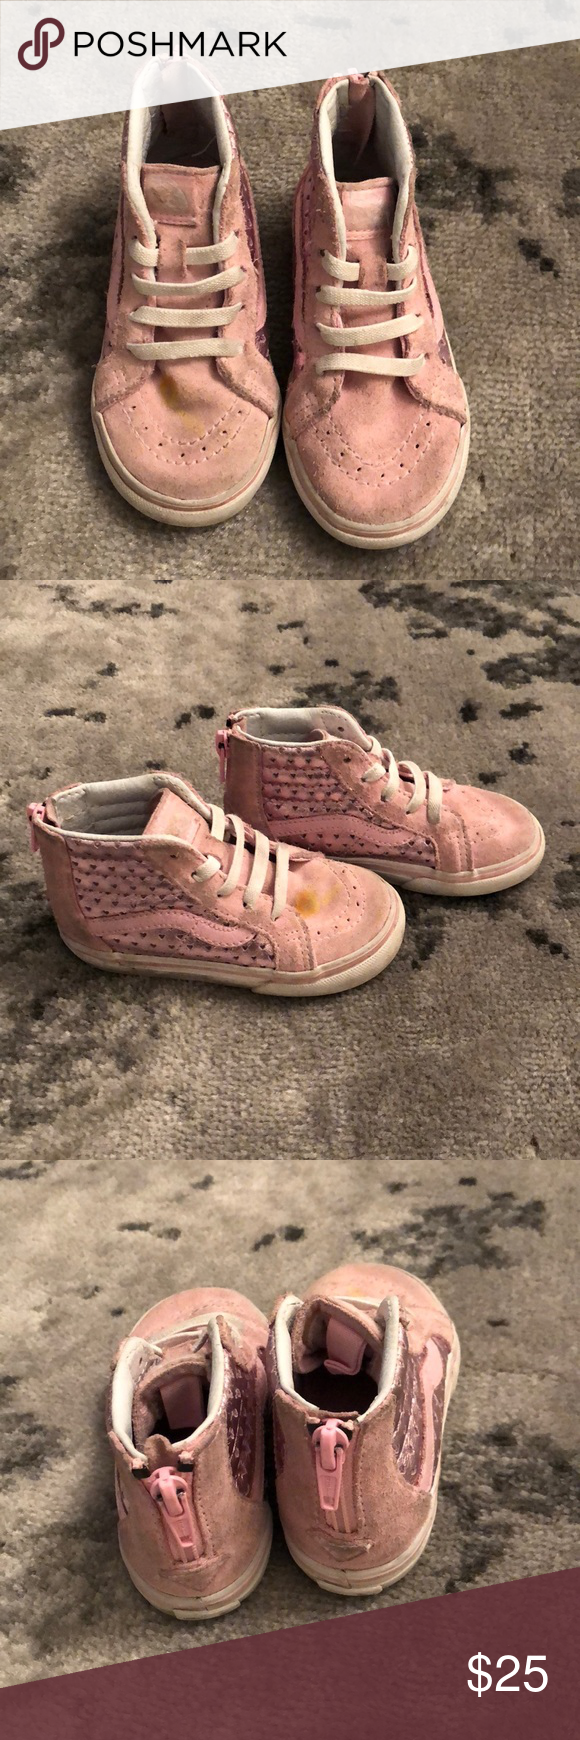 b0c4993313 Vans Pink Suede High Tops Toddler girls Vans Pink Suede high Tops. Metallic  pink on sides. White laces. Zip up back closure. Great condition